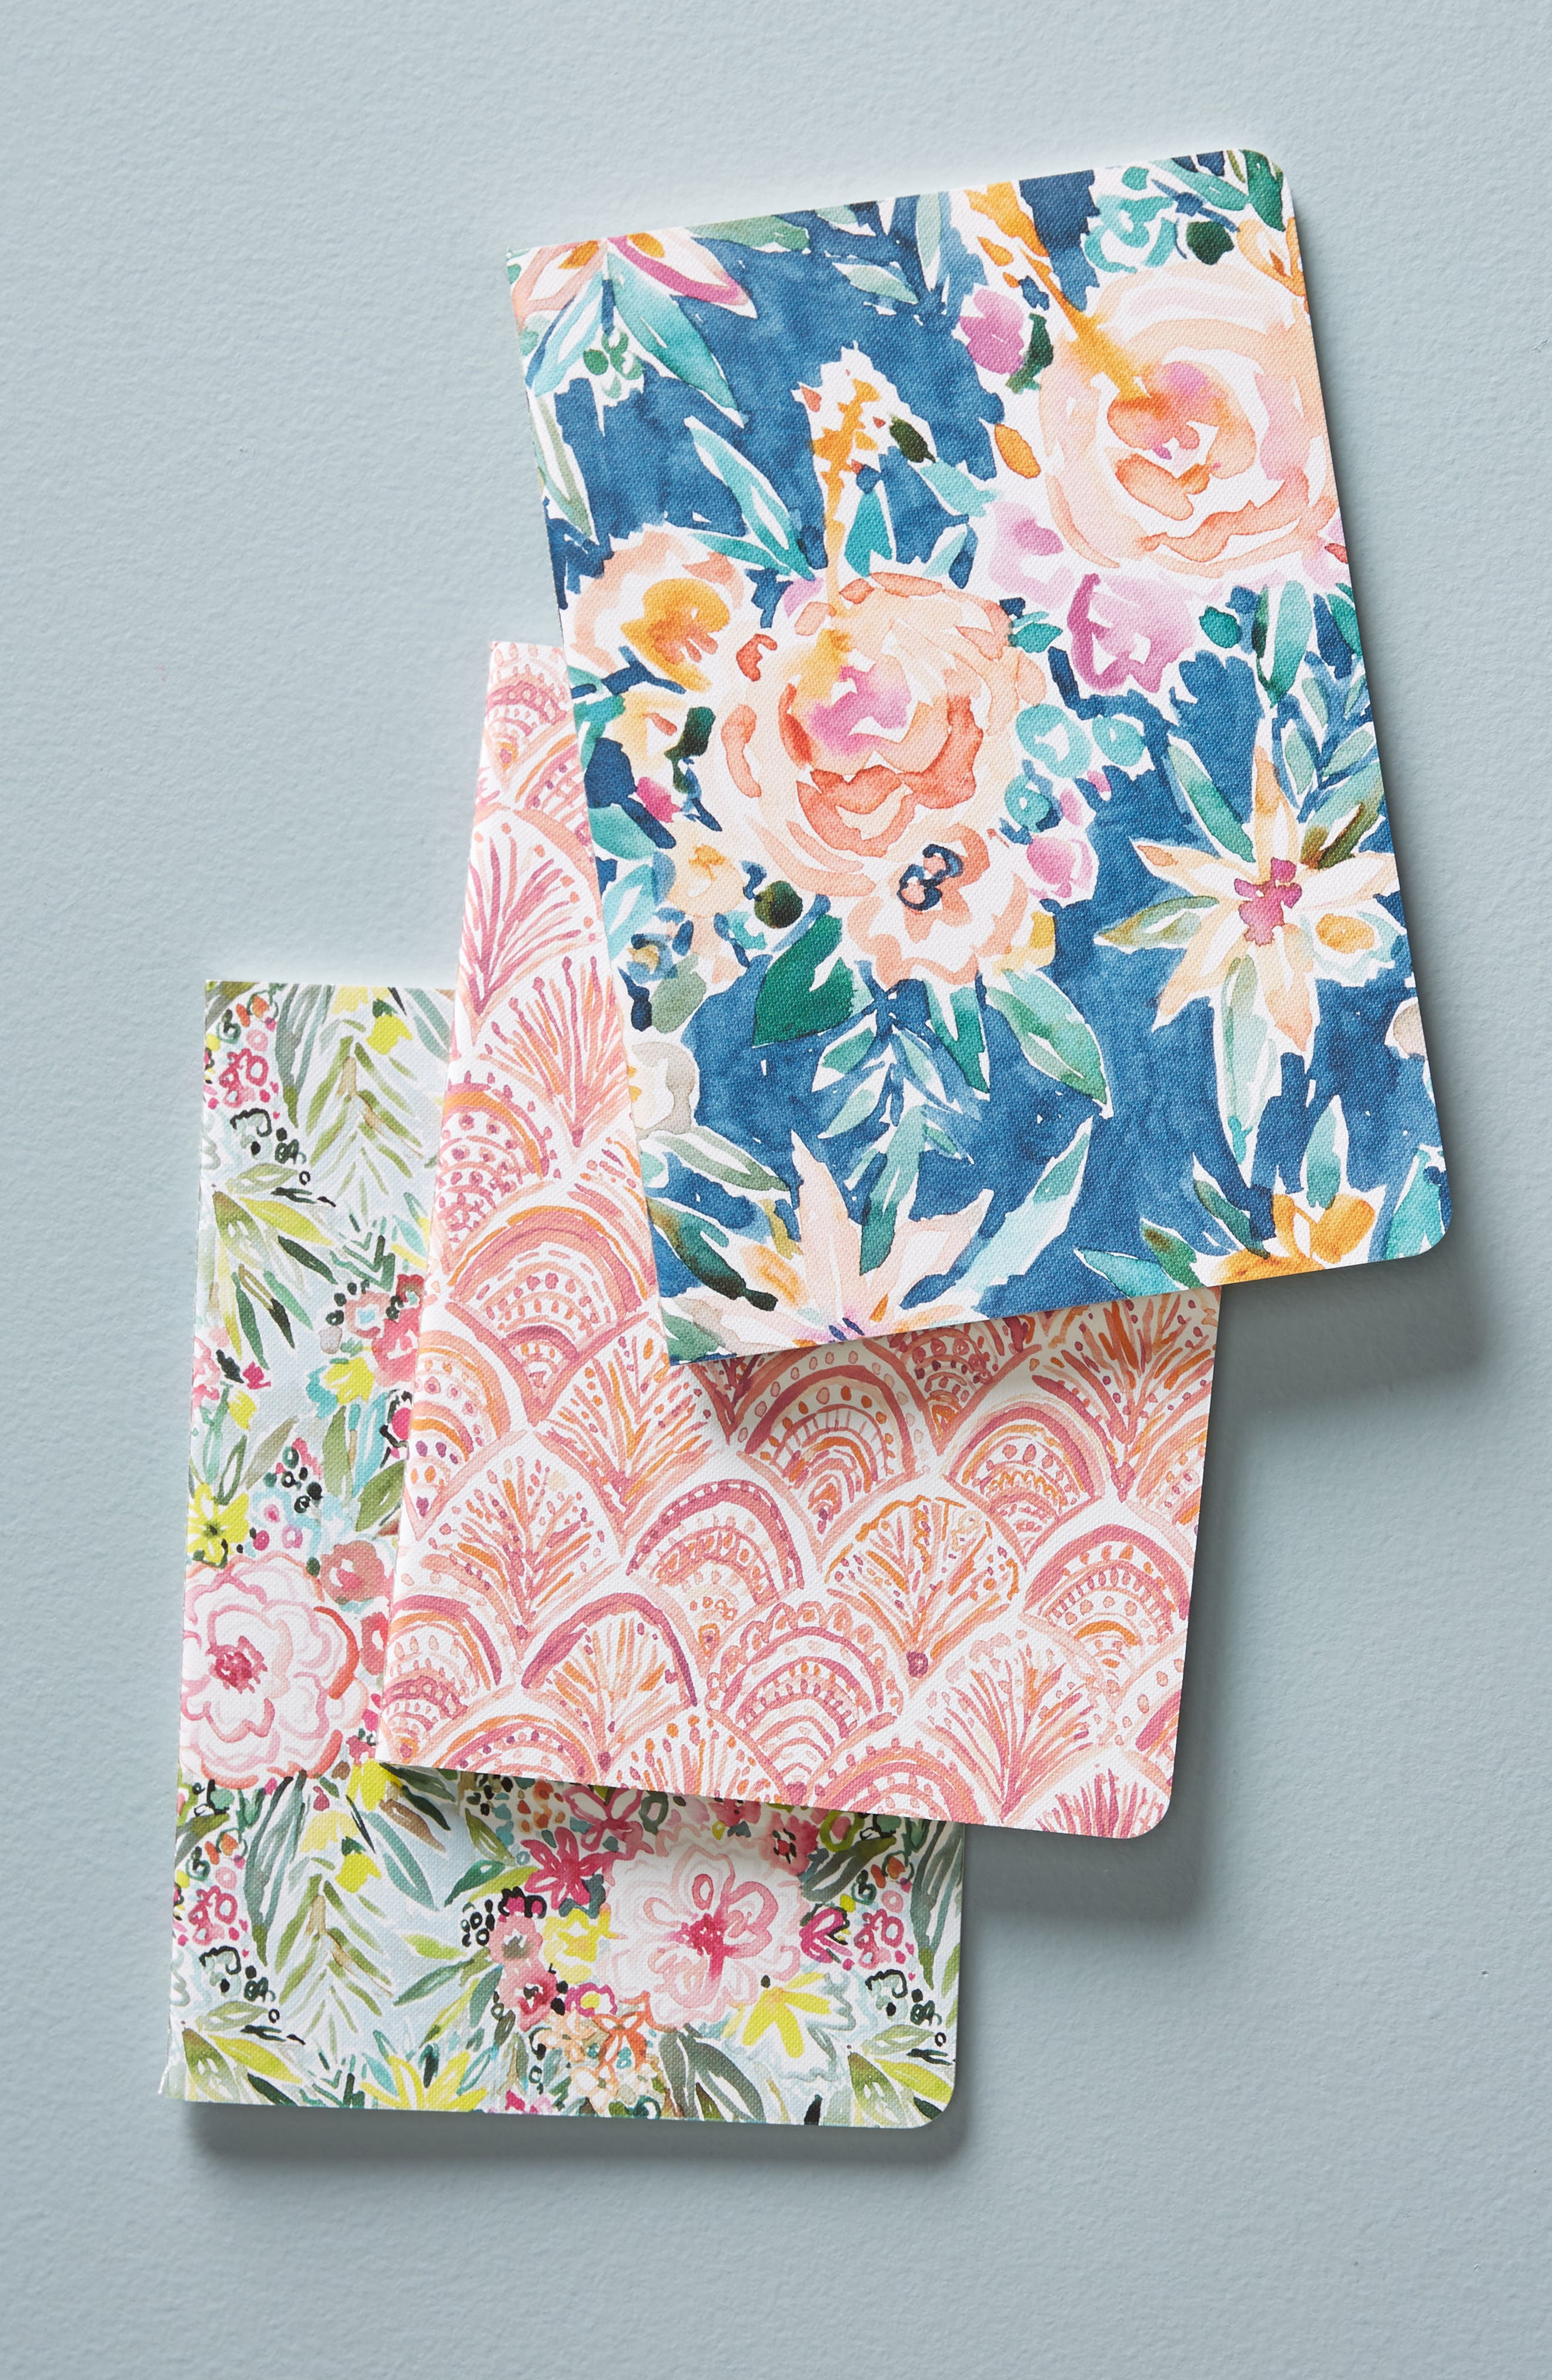 Wild At Heart Set of 3 Journals,                         Main,                         color, 400